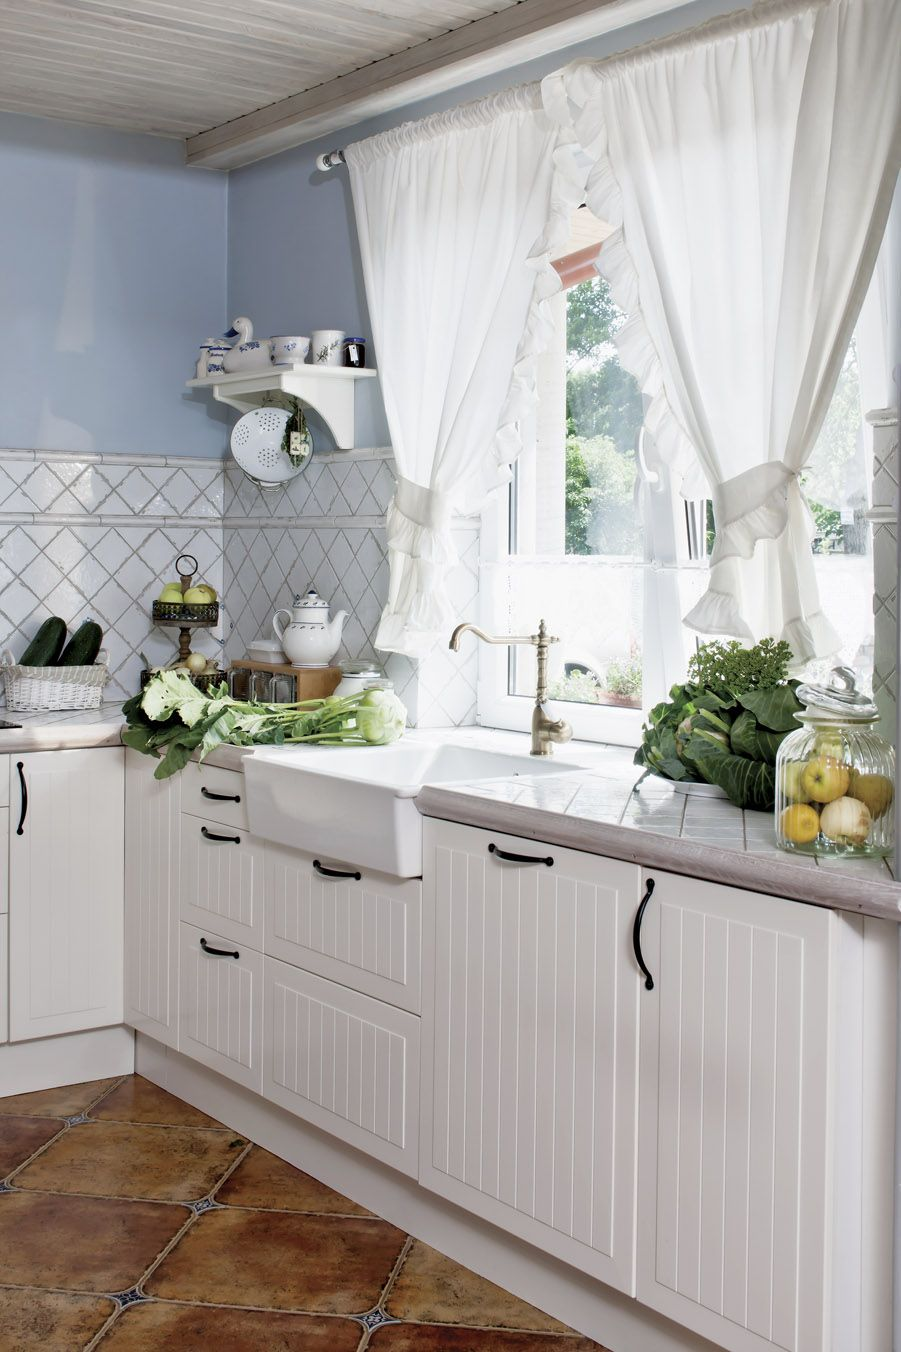 Home in the Countryside   Inspiring Interiors   Country kitchen ...